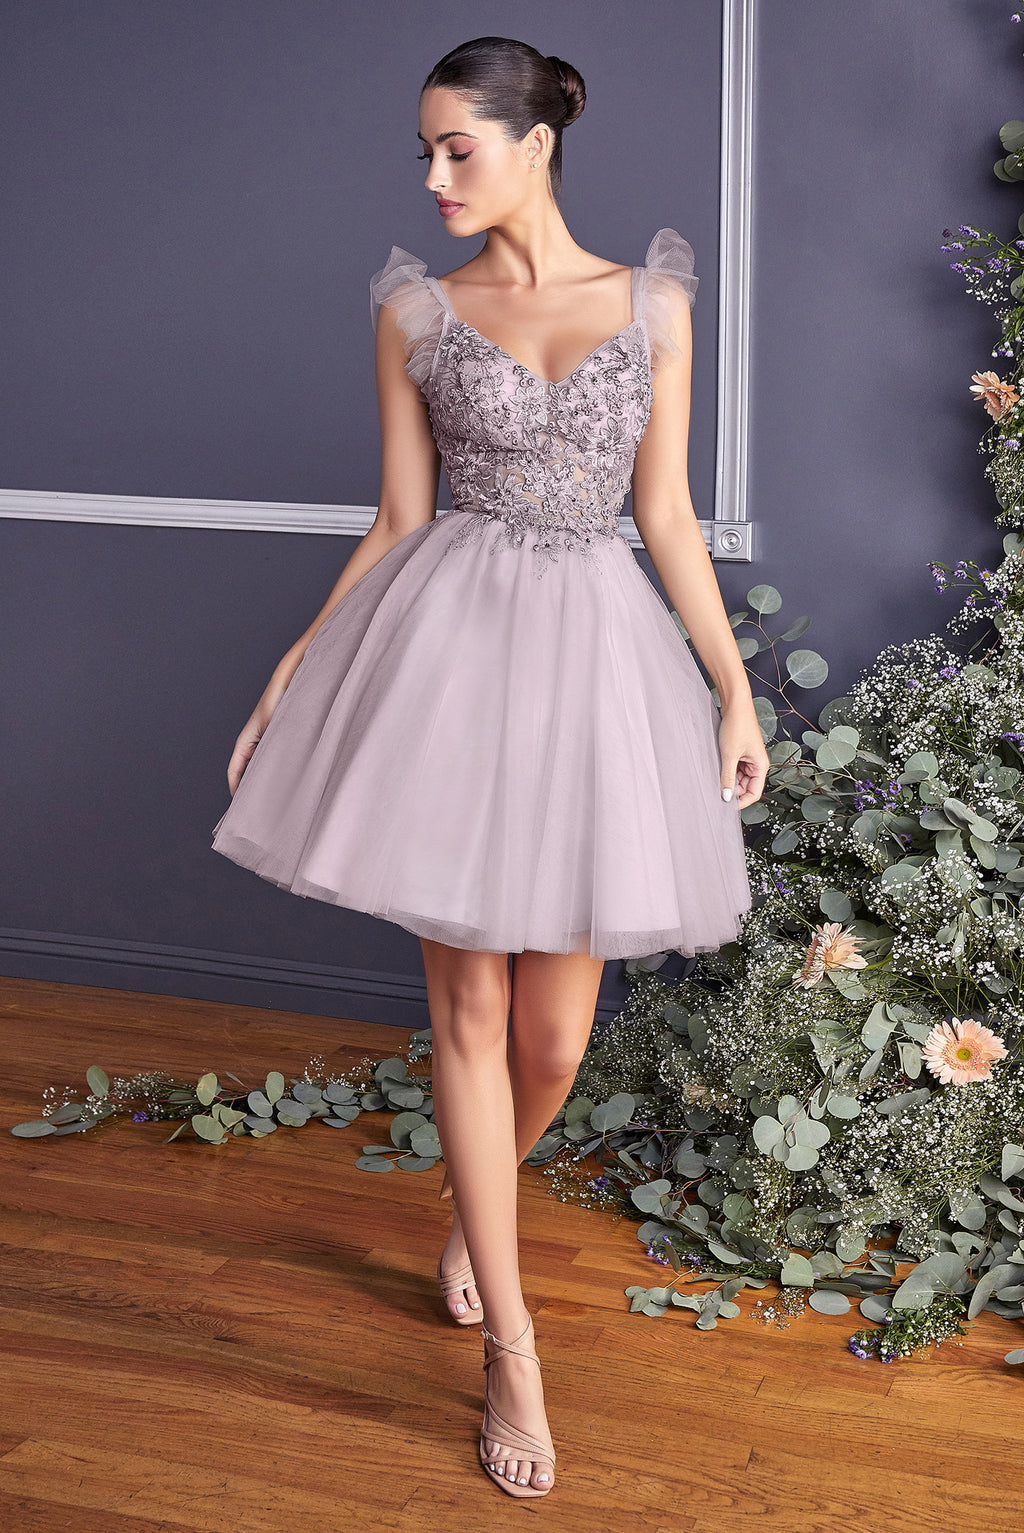 Cute Short Ball Gown with Poofy Strap Sleeves and Embroidered Bodice #CD9238